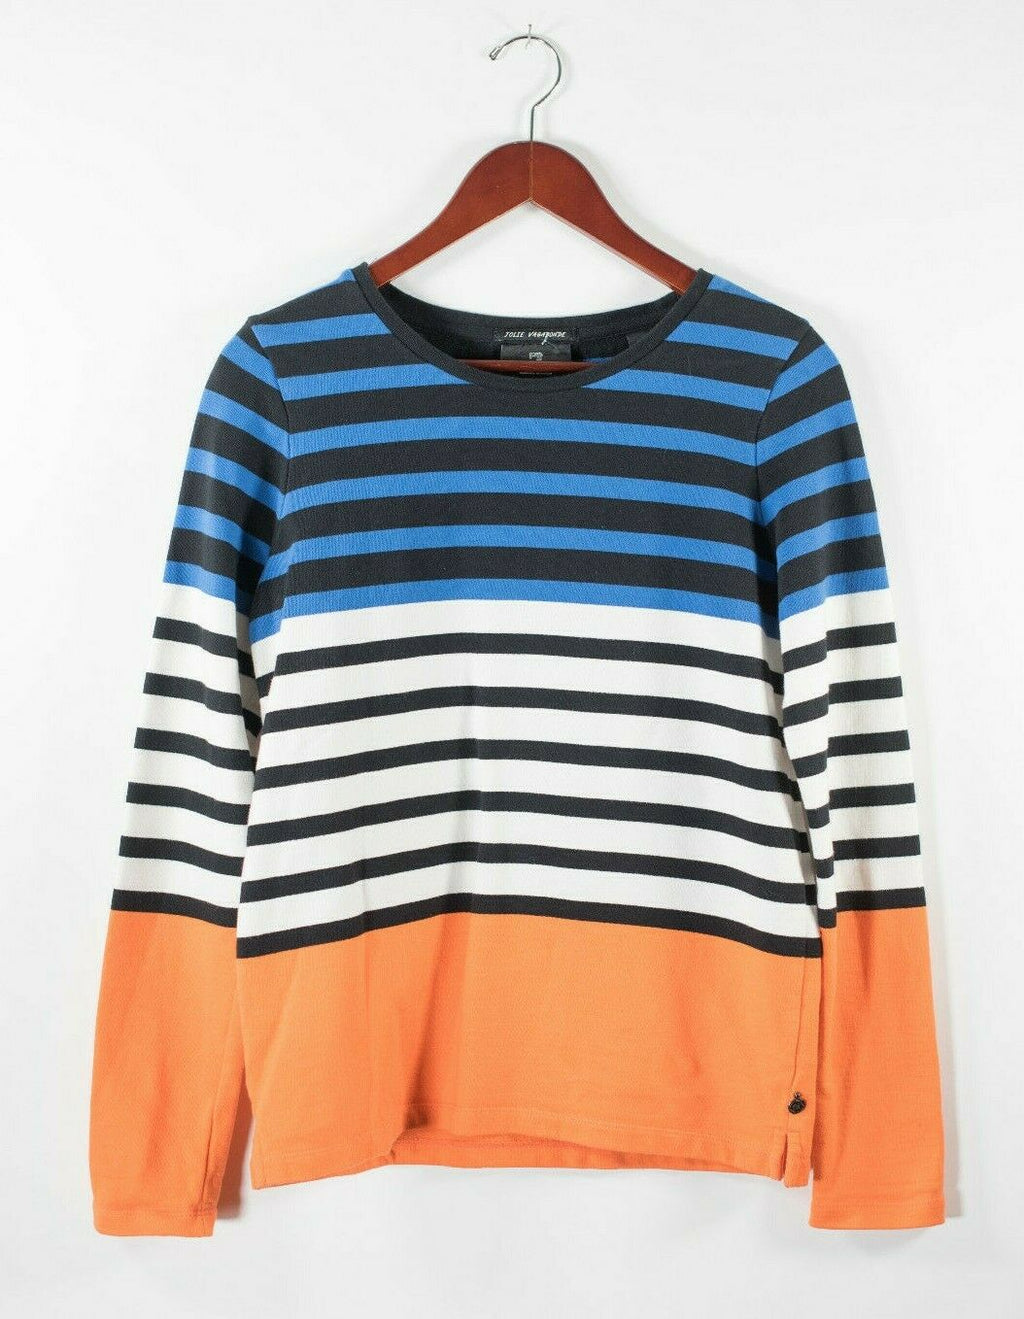 Maison Scotch & Soda Womens Small Blue Orange White Pullover Sweater Striped Top